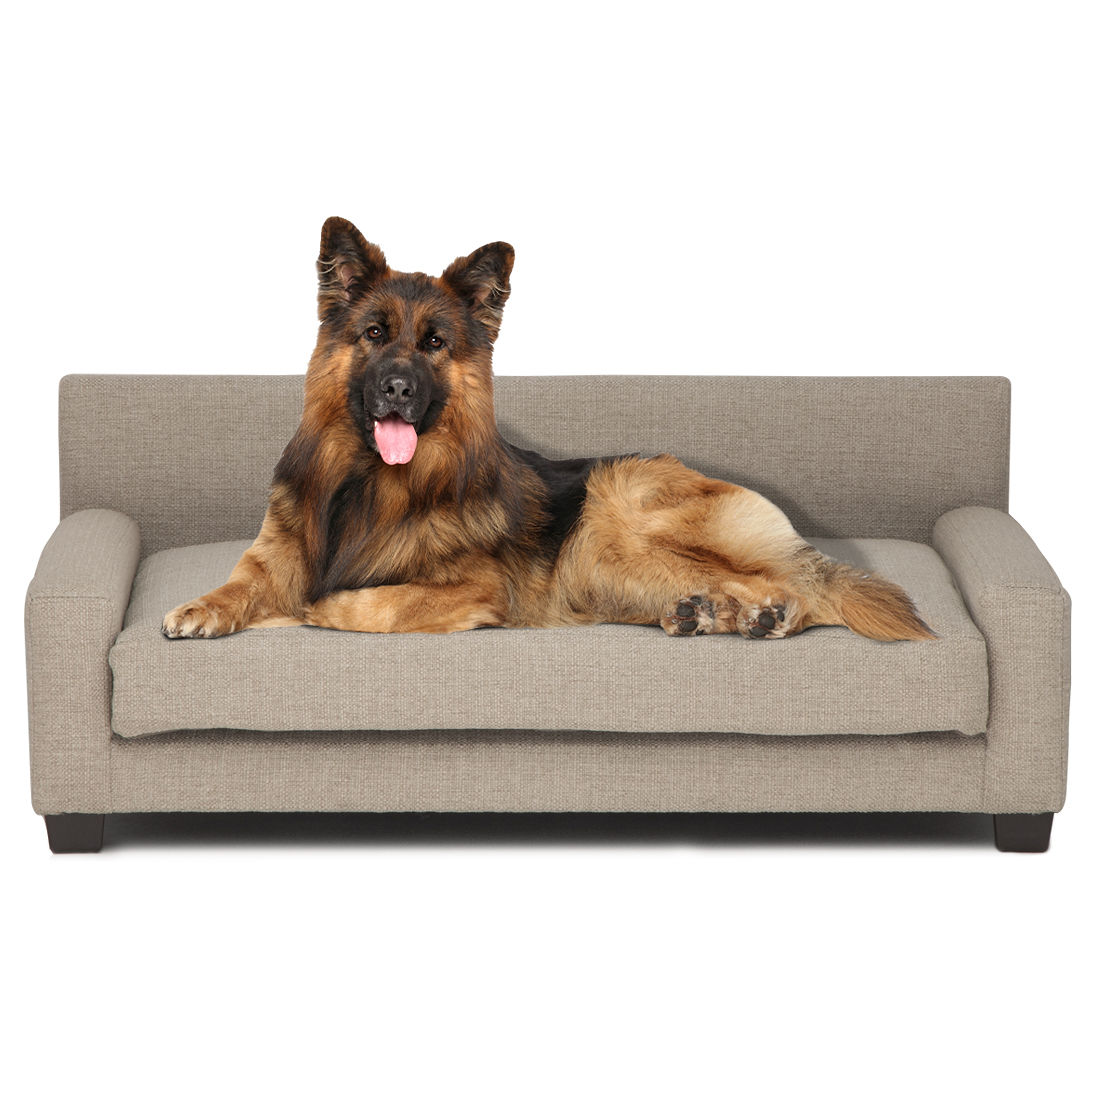 Metro Large Dog Bed in Oatmeal